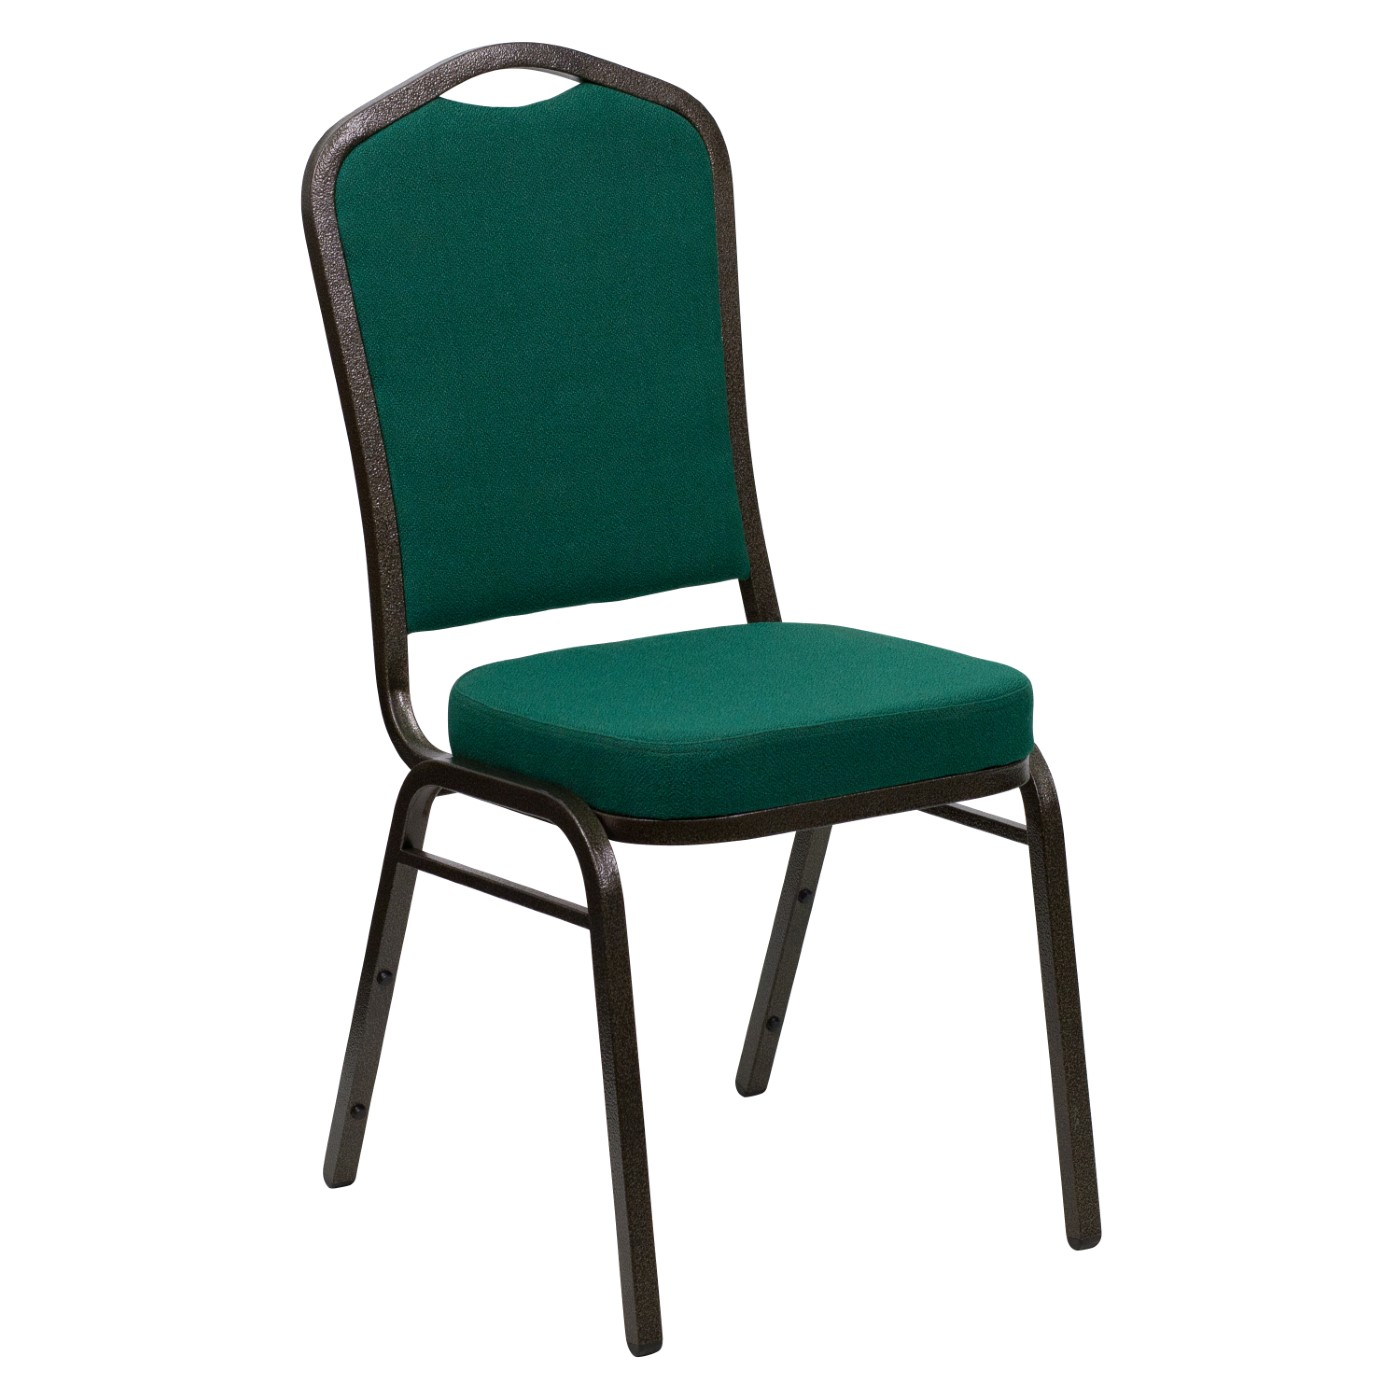 TOUGH ENOUGH Series Crown Back Stacking Banquet Chair in Green Fabric - Gold Vein Frame